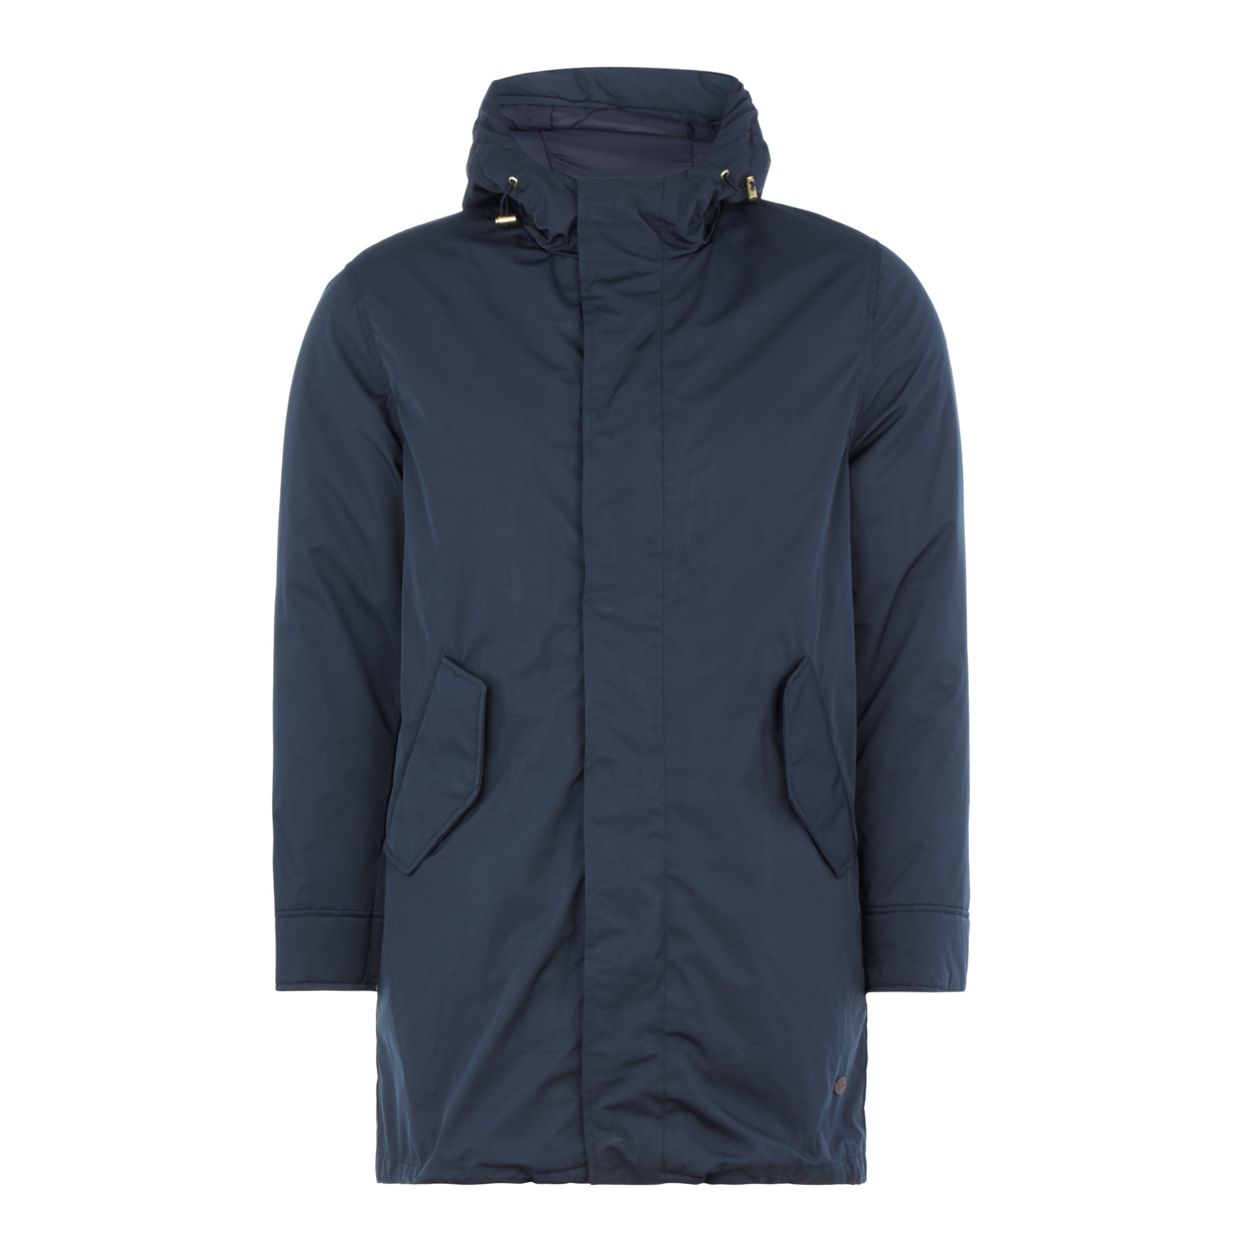 Hammond & Co. by Patrick Grant Navy shower resistant parka coat